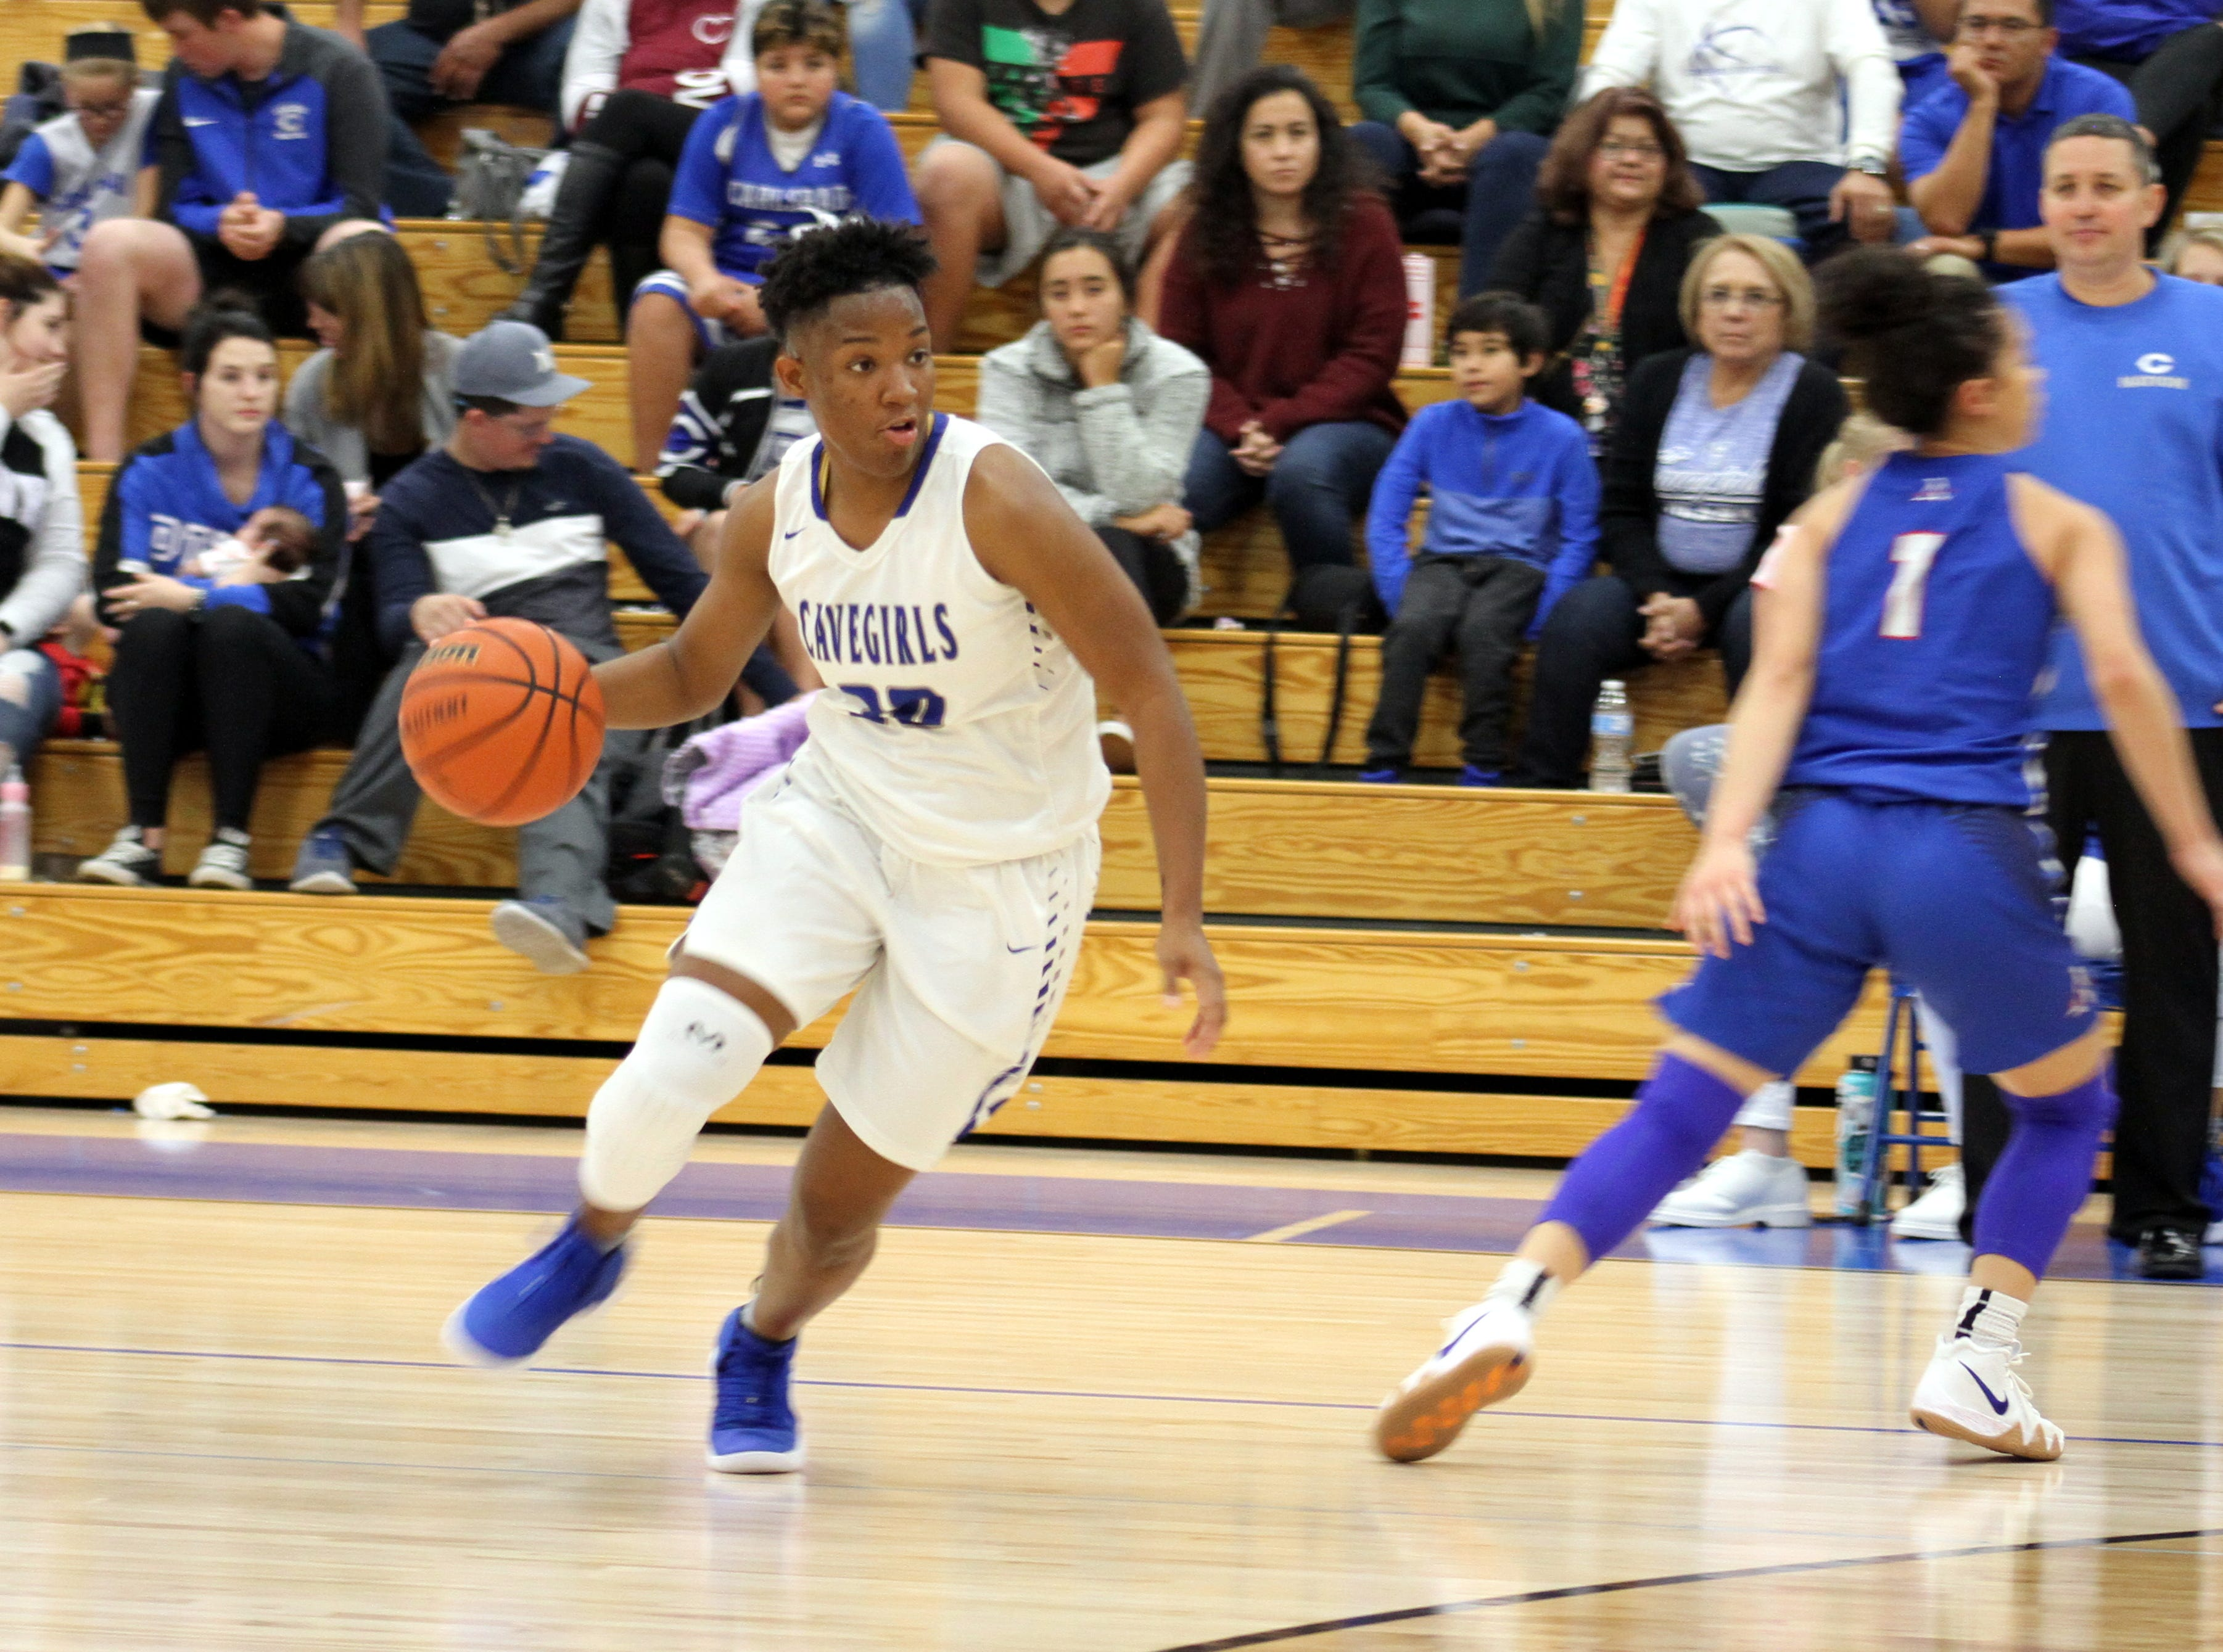 Dayshaun Moore looks to drive the lane during Monday's game against Americas. She finished with nine points.